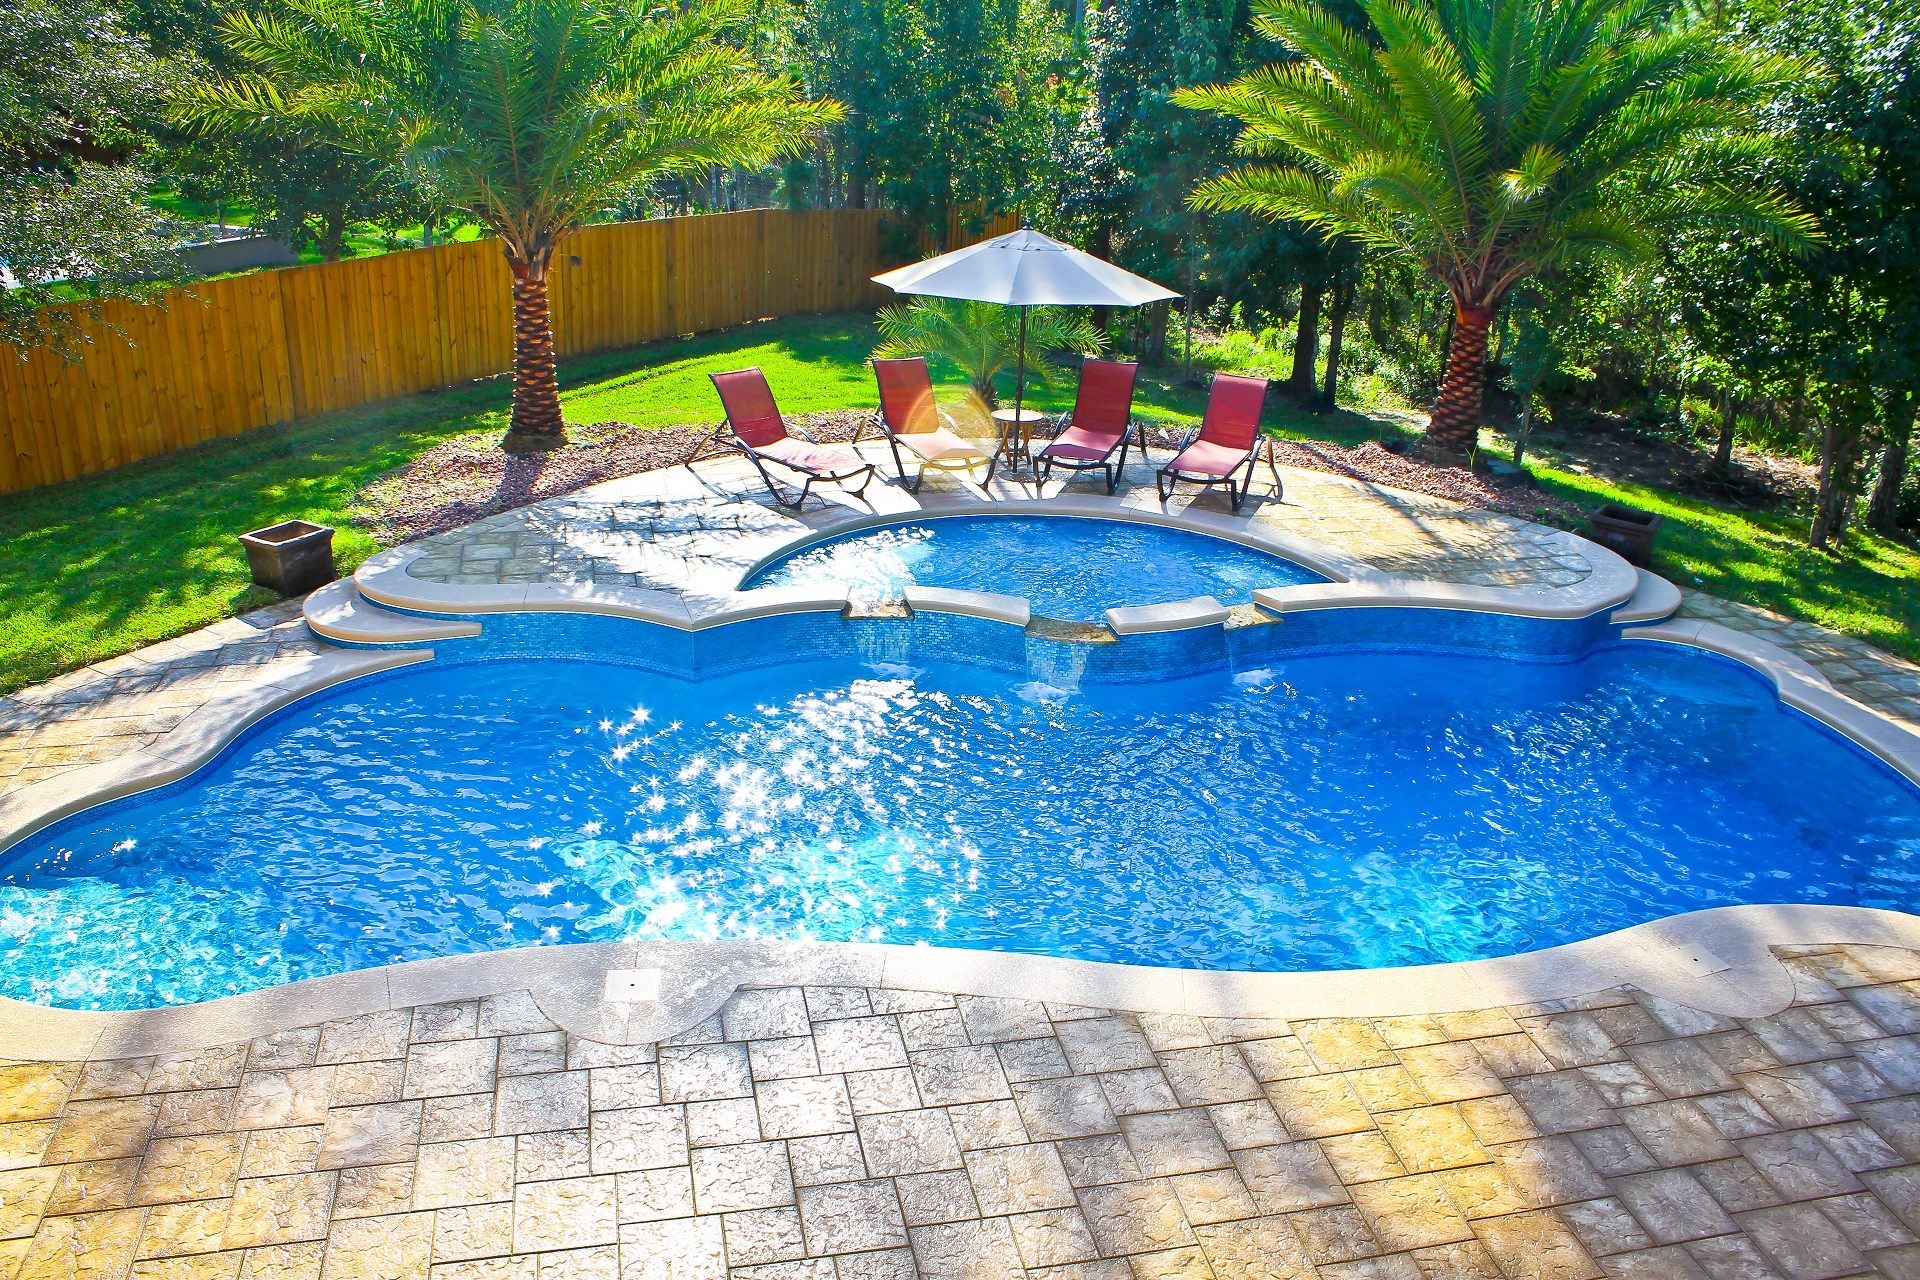 ap fiberglass pools consulting llc fiberglass pool experts. Black Bedroom Furniture Sets. Home Design Ideas